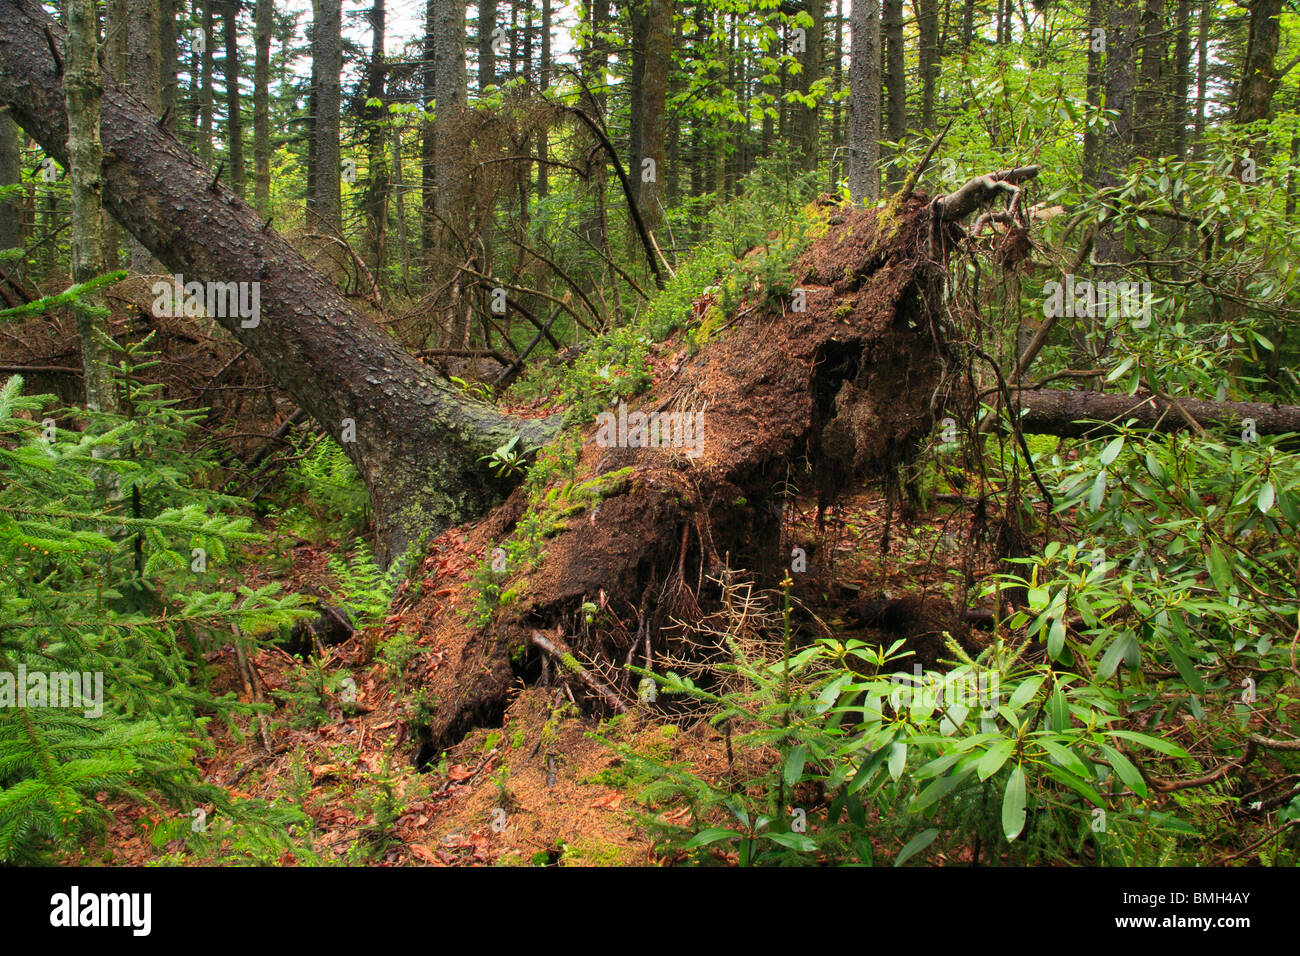 Plants on Fallen Tree, Rohrbaugh Trail, Dolly Sods Wilderness Area, Hopeville, West Virginia - Stock Image